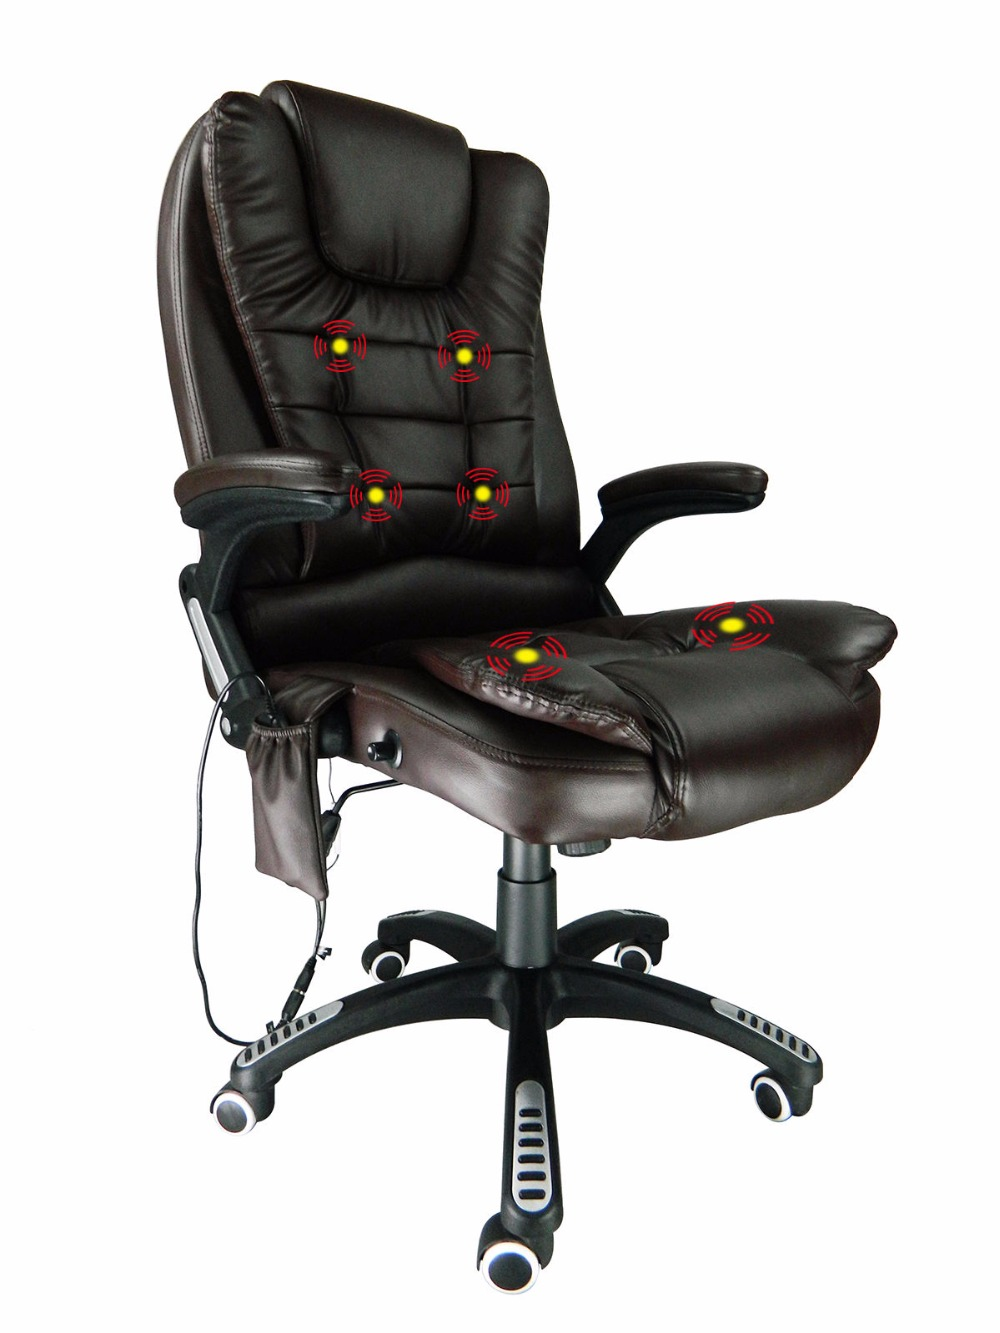 swivel office chair reclining leather 6 point massage. Black Bedroom Furniture Sets. Home Design Ideas